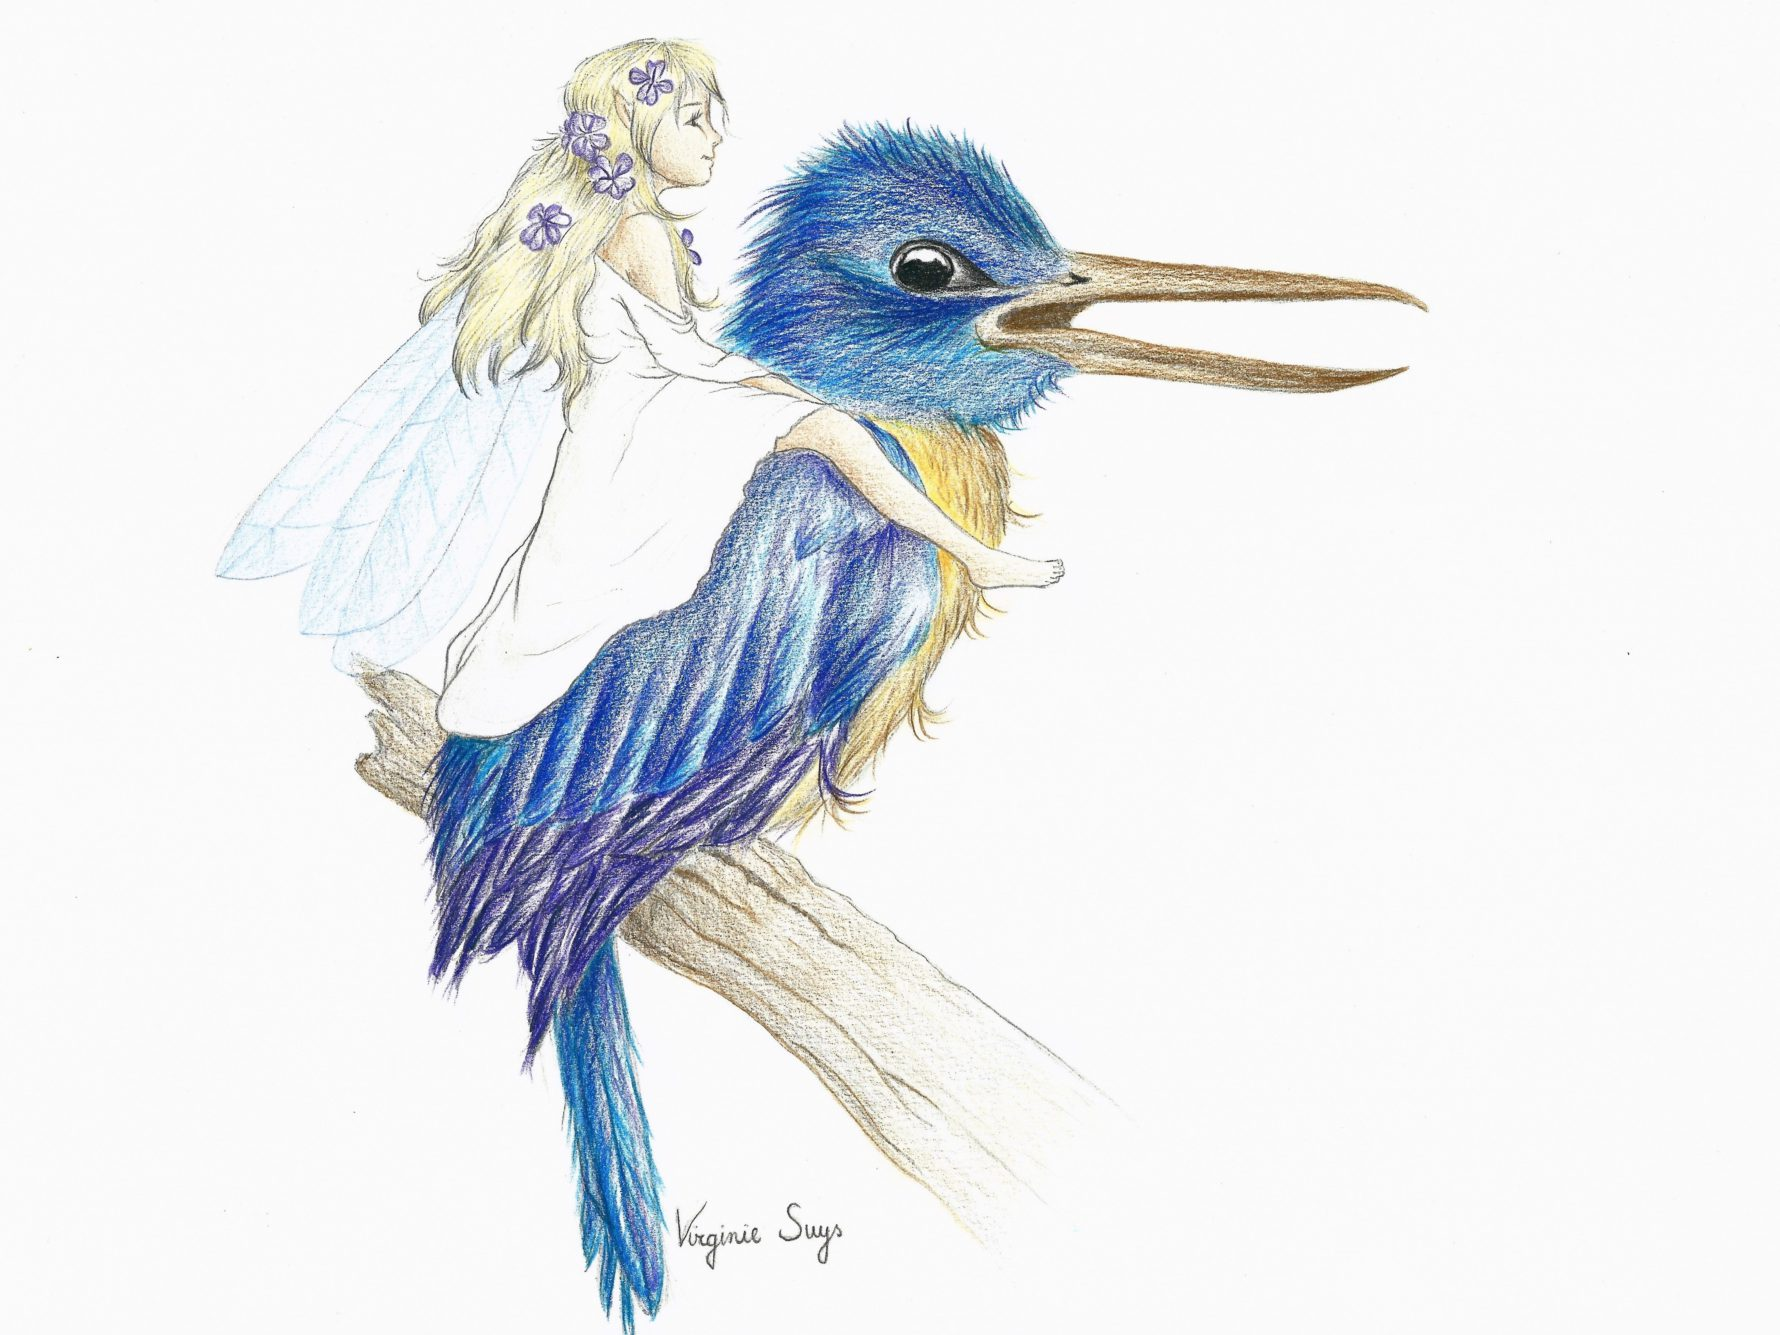 Virginie Suys Big bird & fairy in blue-white illustration